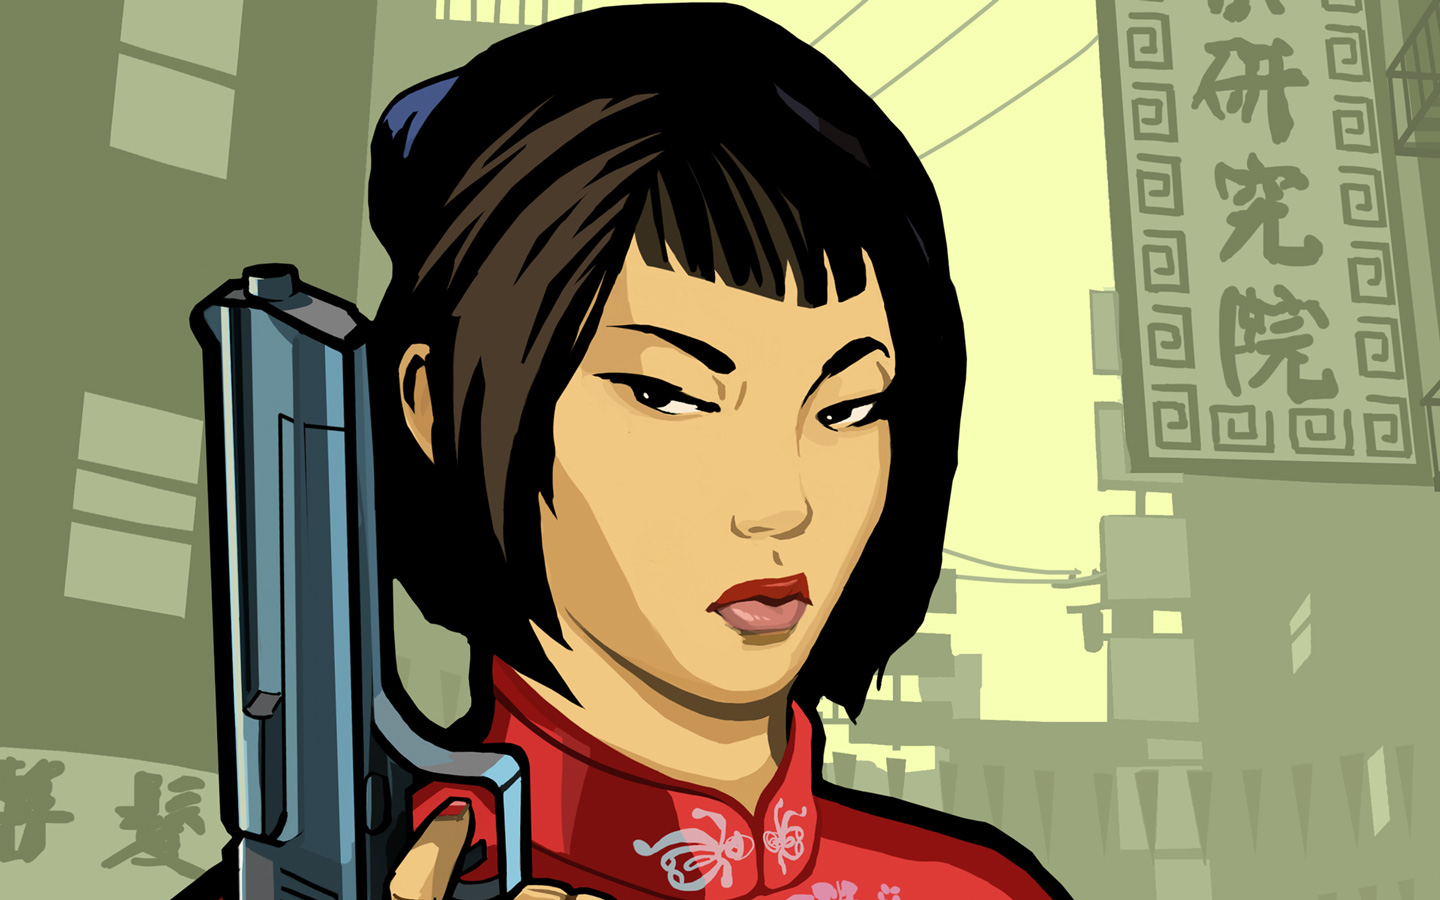 Free Grand Theft Auto: Chinatown Wars Wallpaper in 1440x900